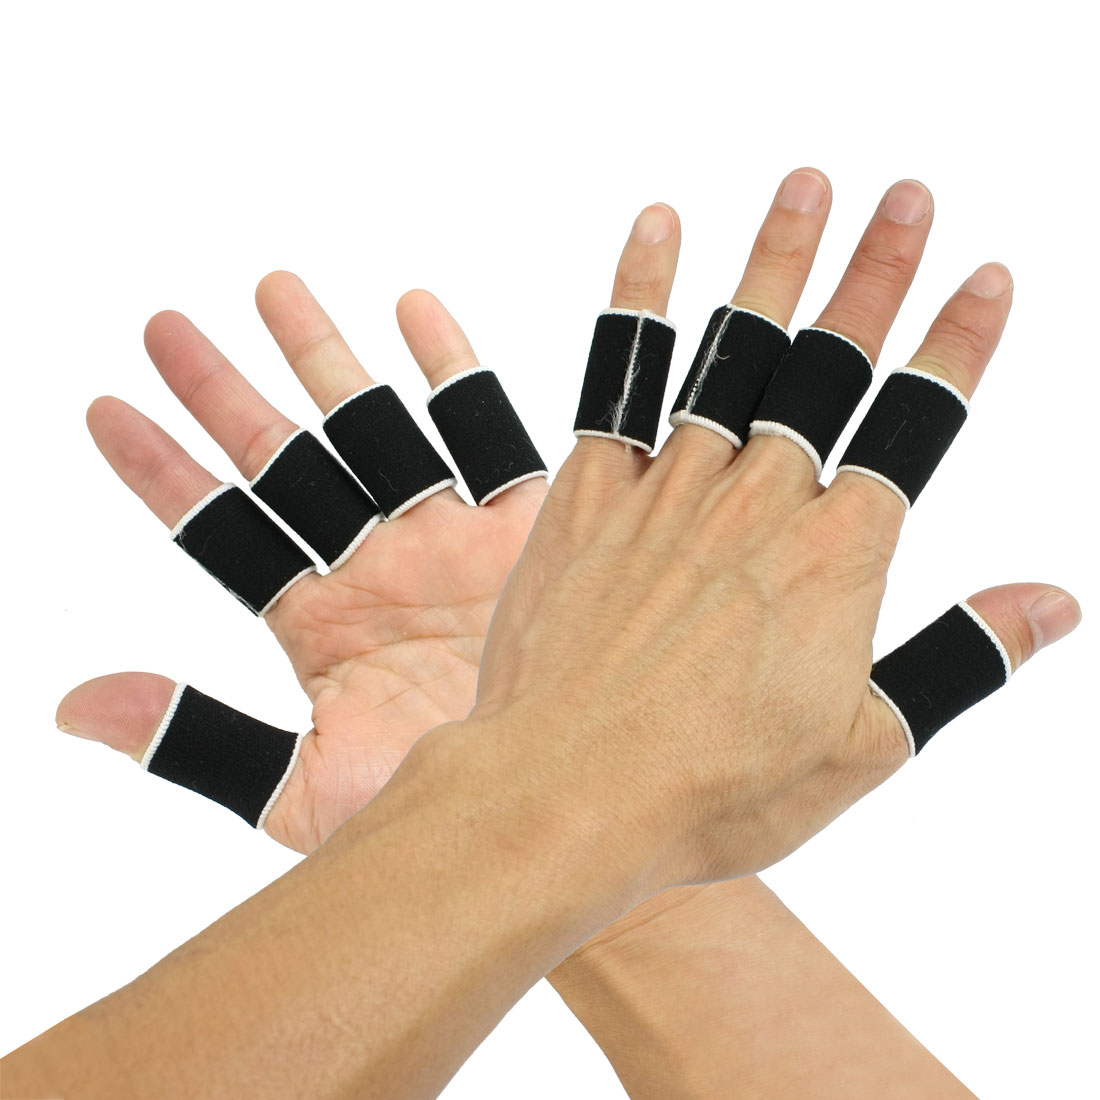 10 Pcs Volleyball Sports Neoprene Finger Sleeve Cover Black